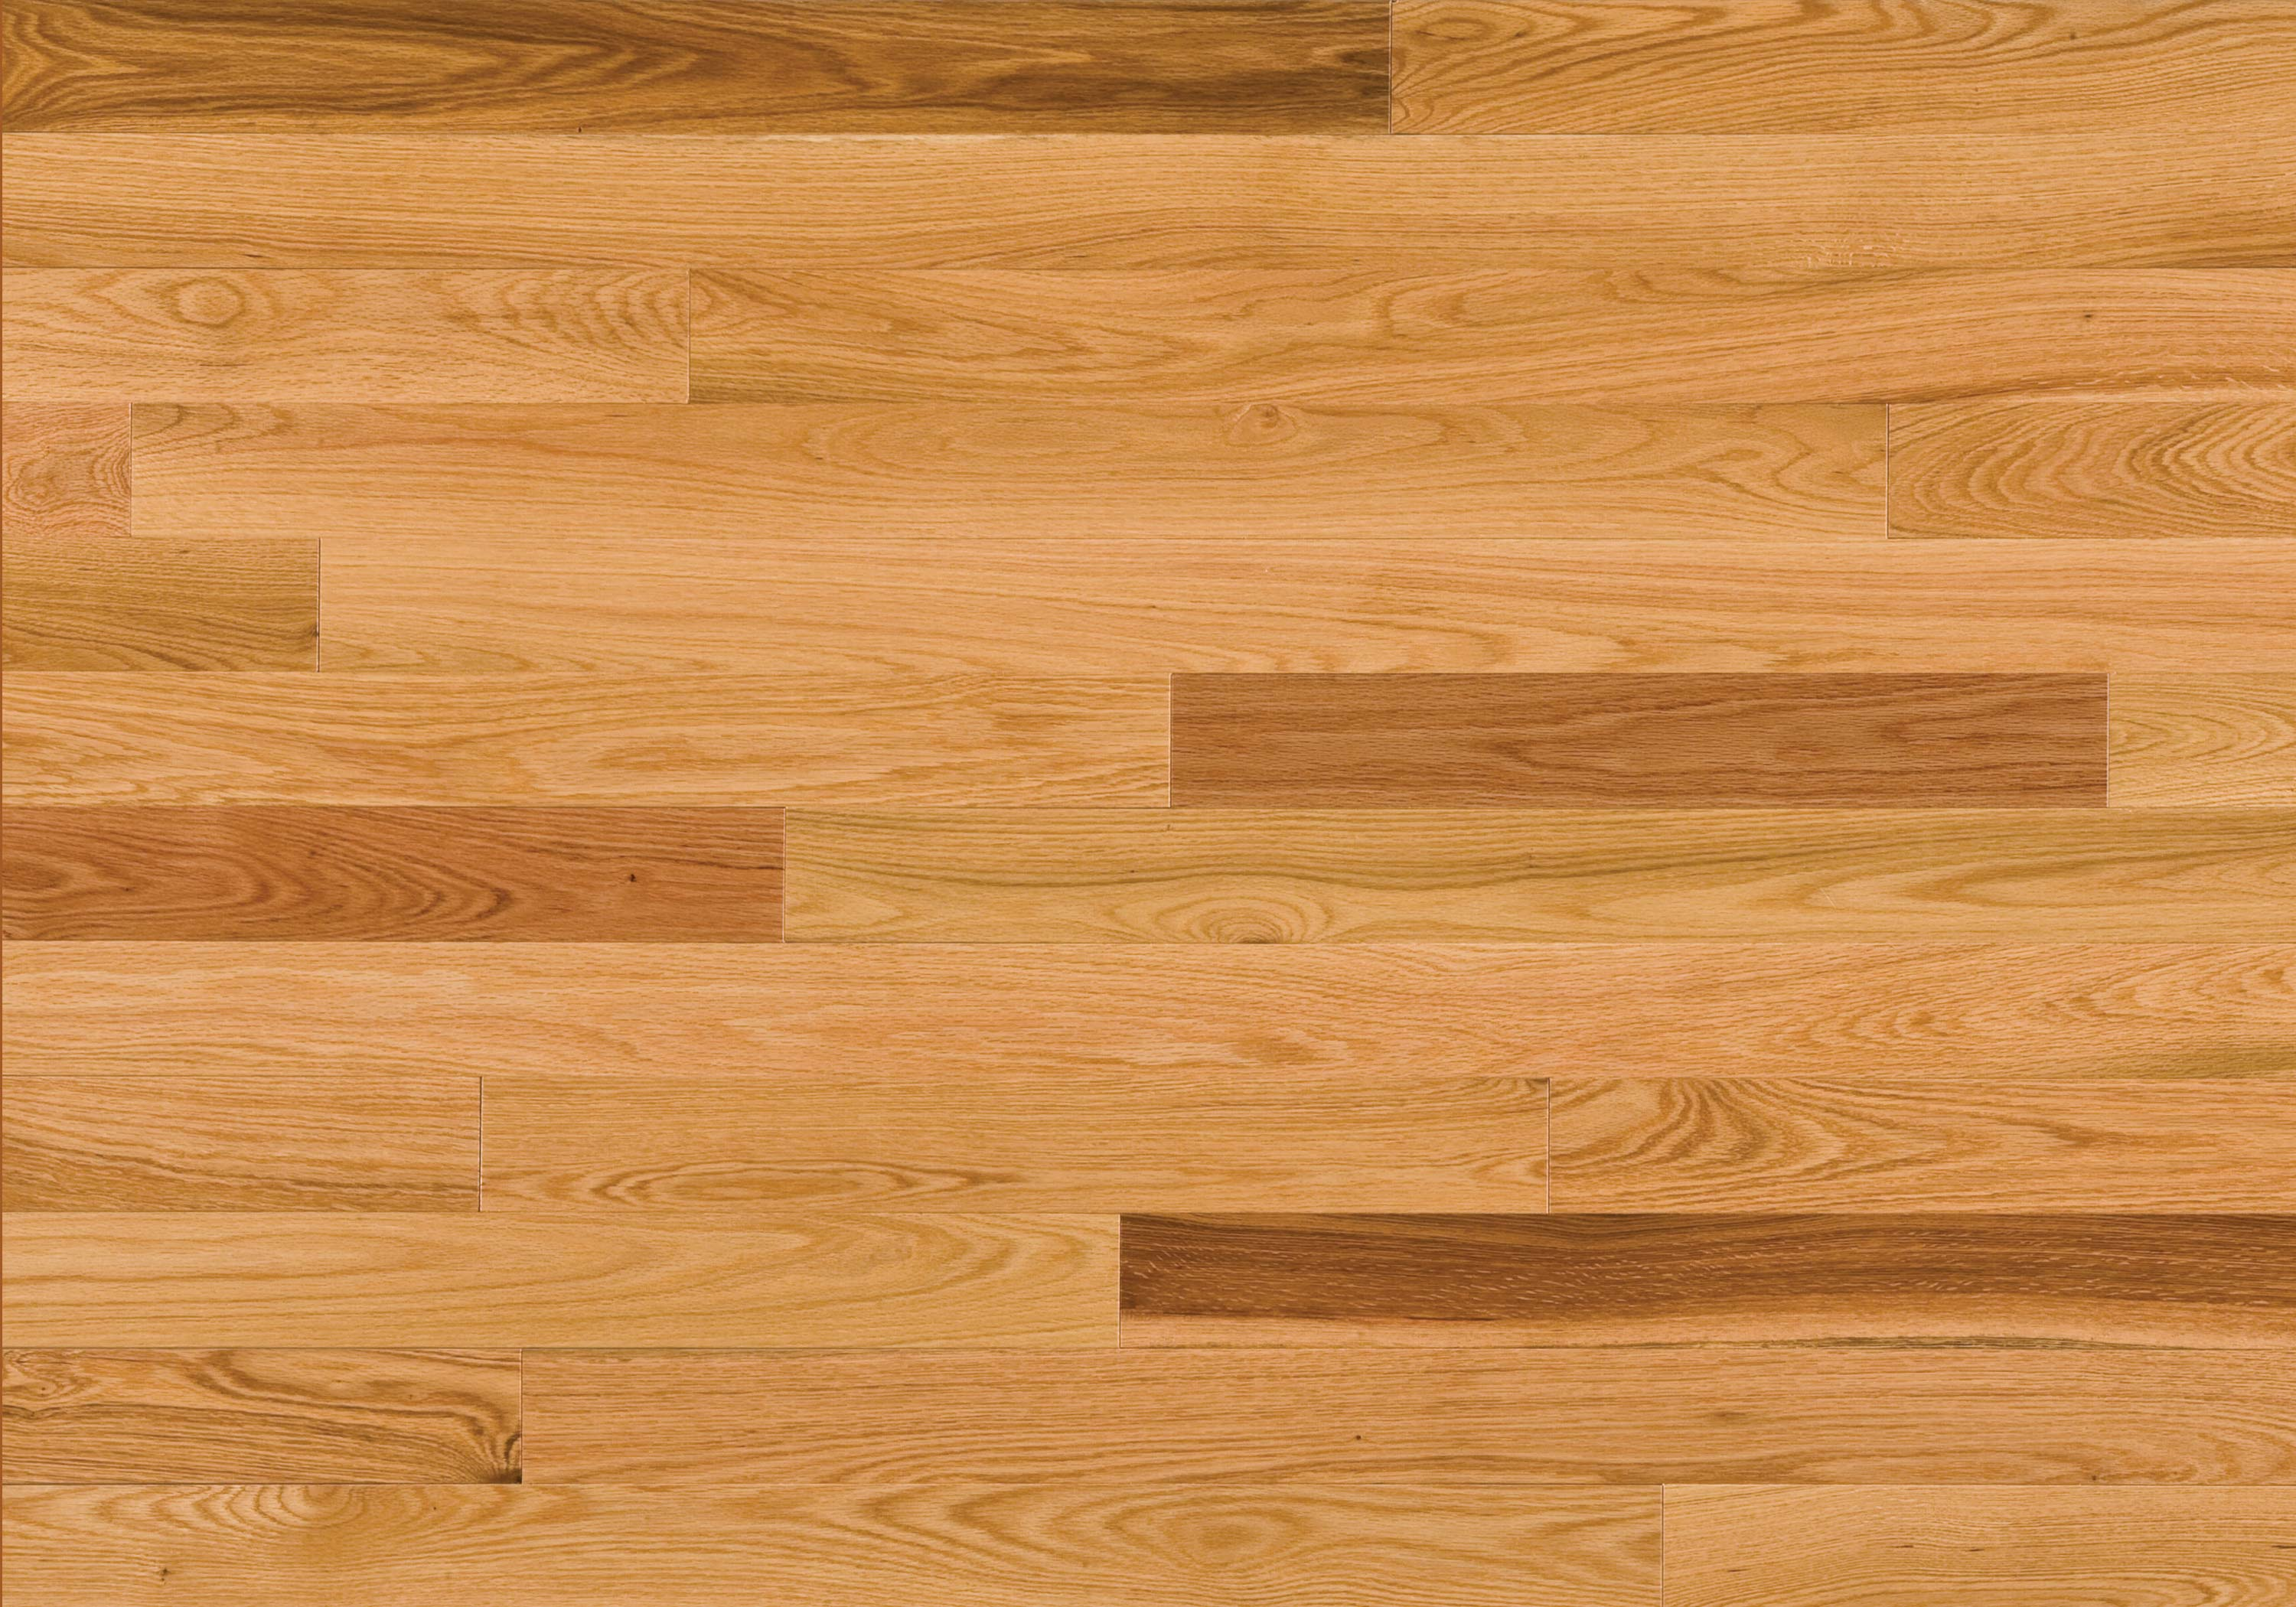 Red oak hardwood flooring natural natural essential lauzon for Wood flooring natural